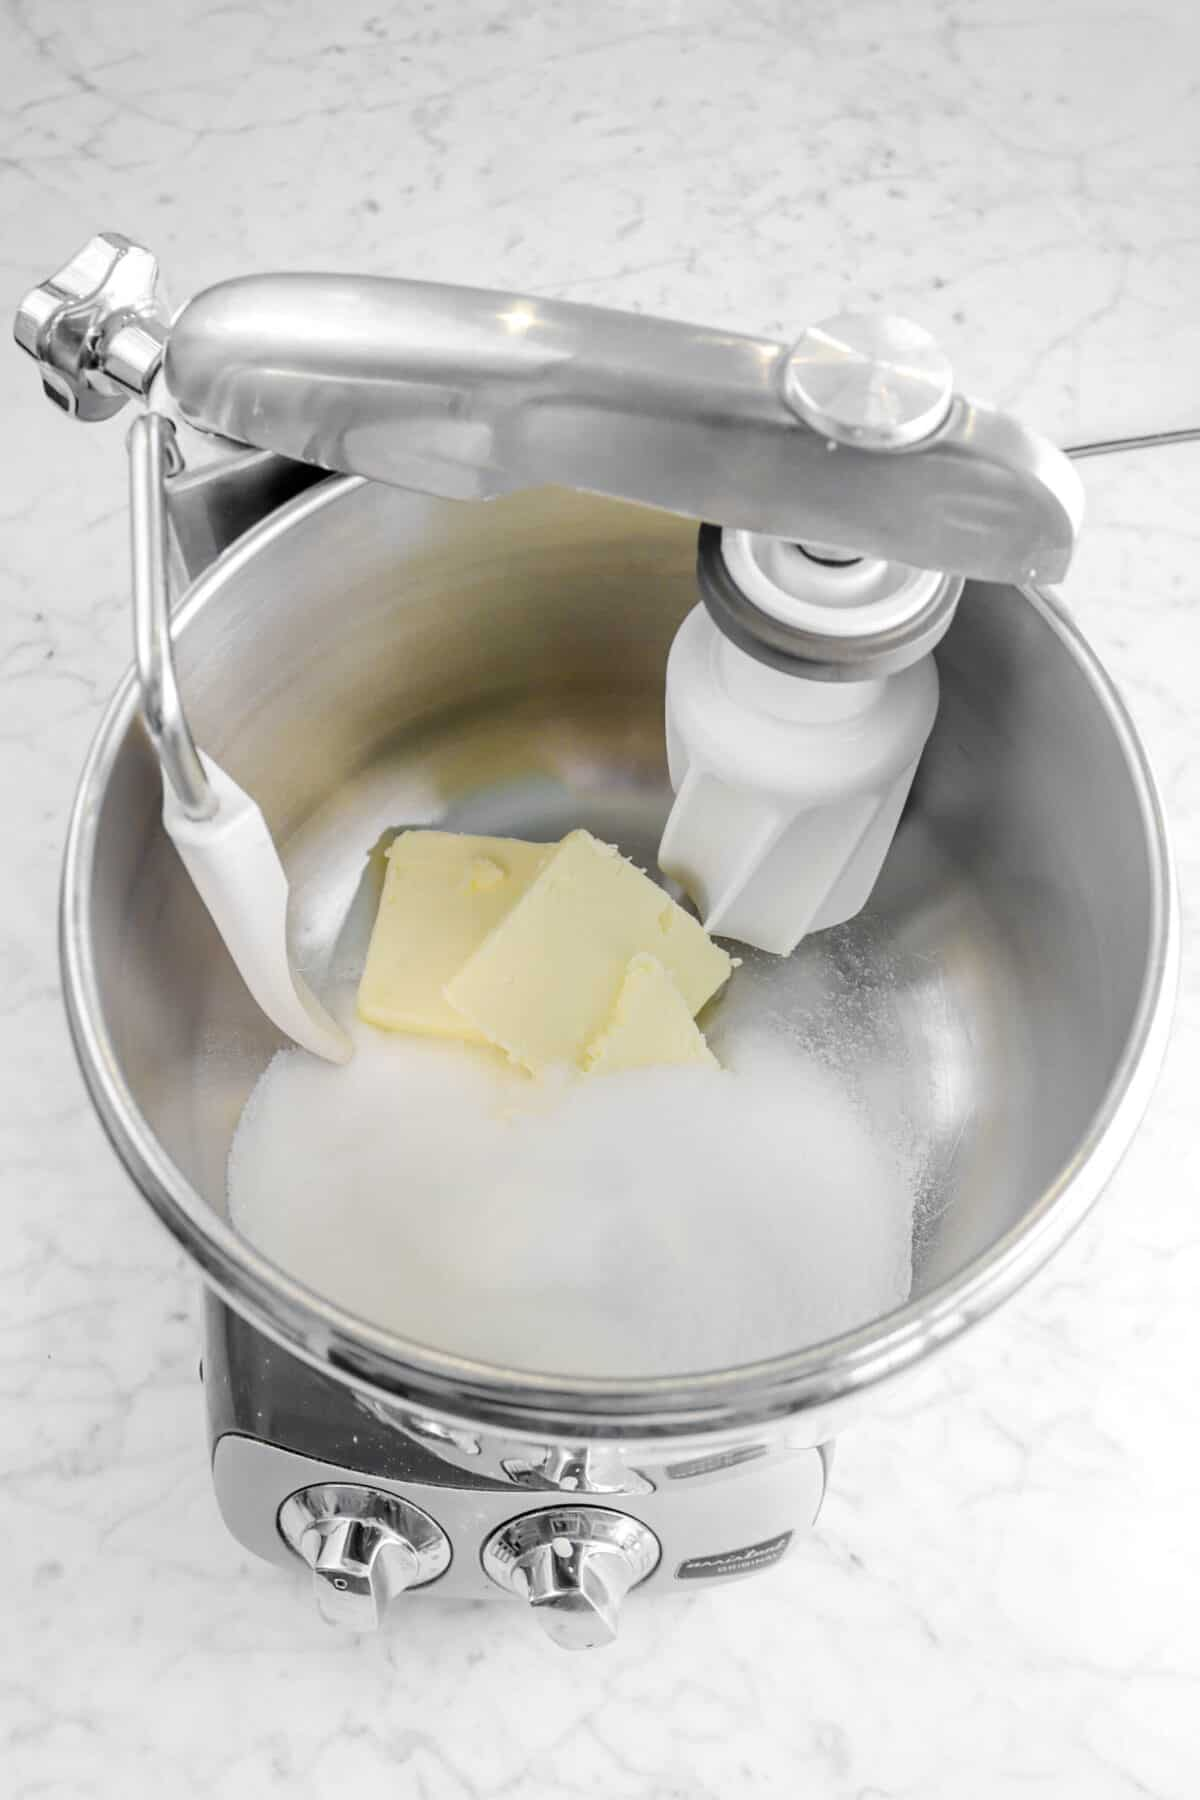 butter and sugar in a mixer